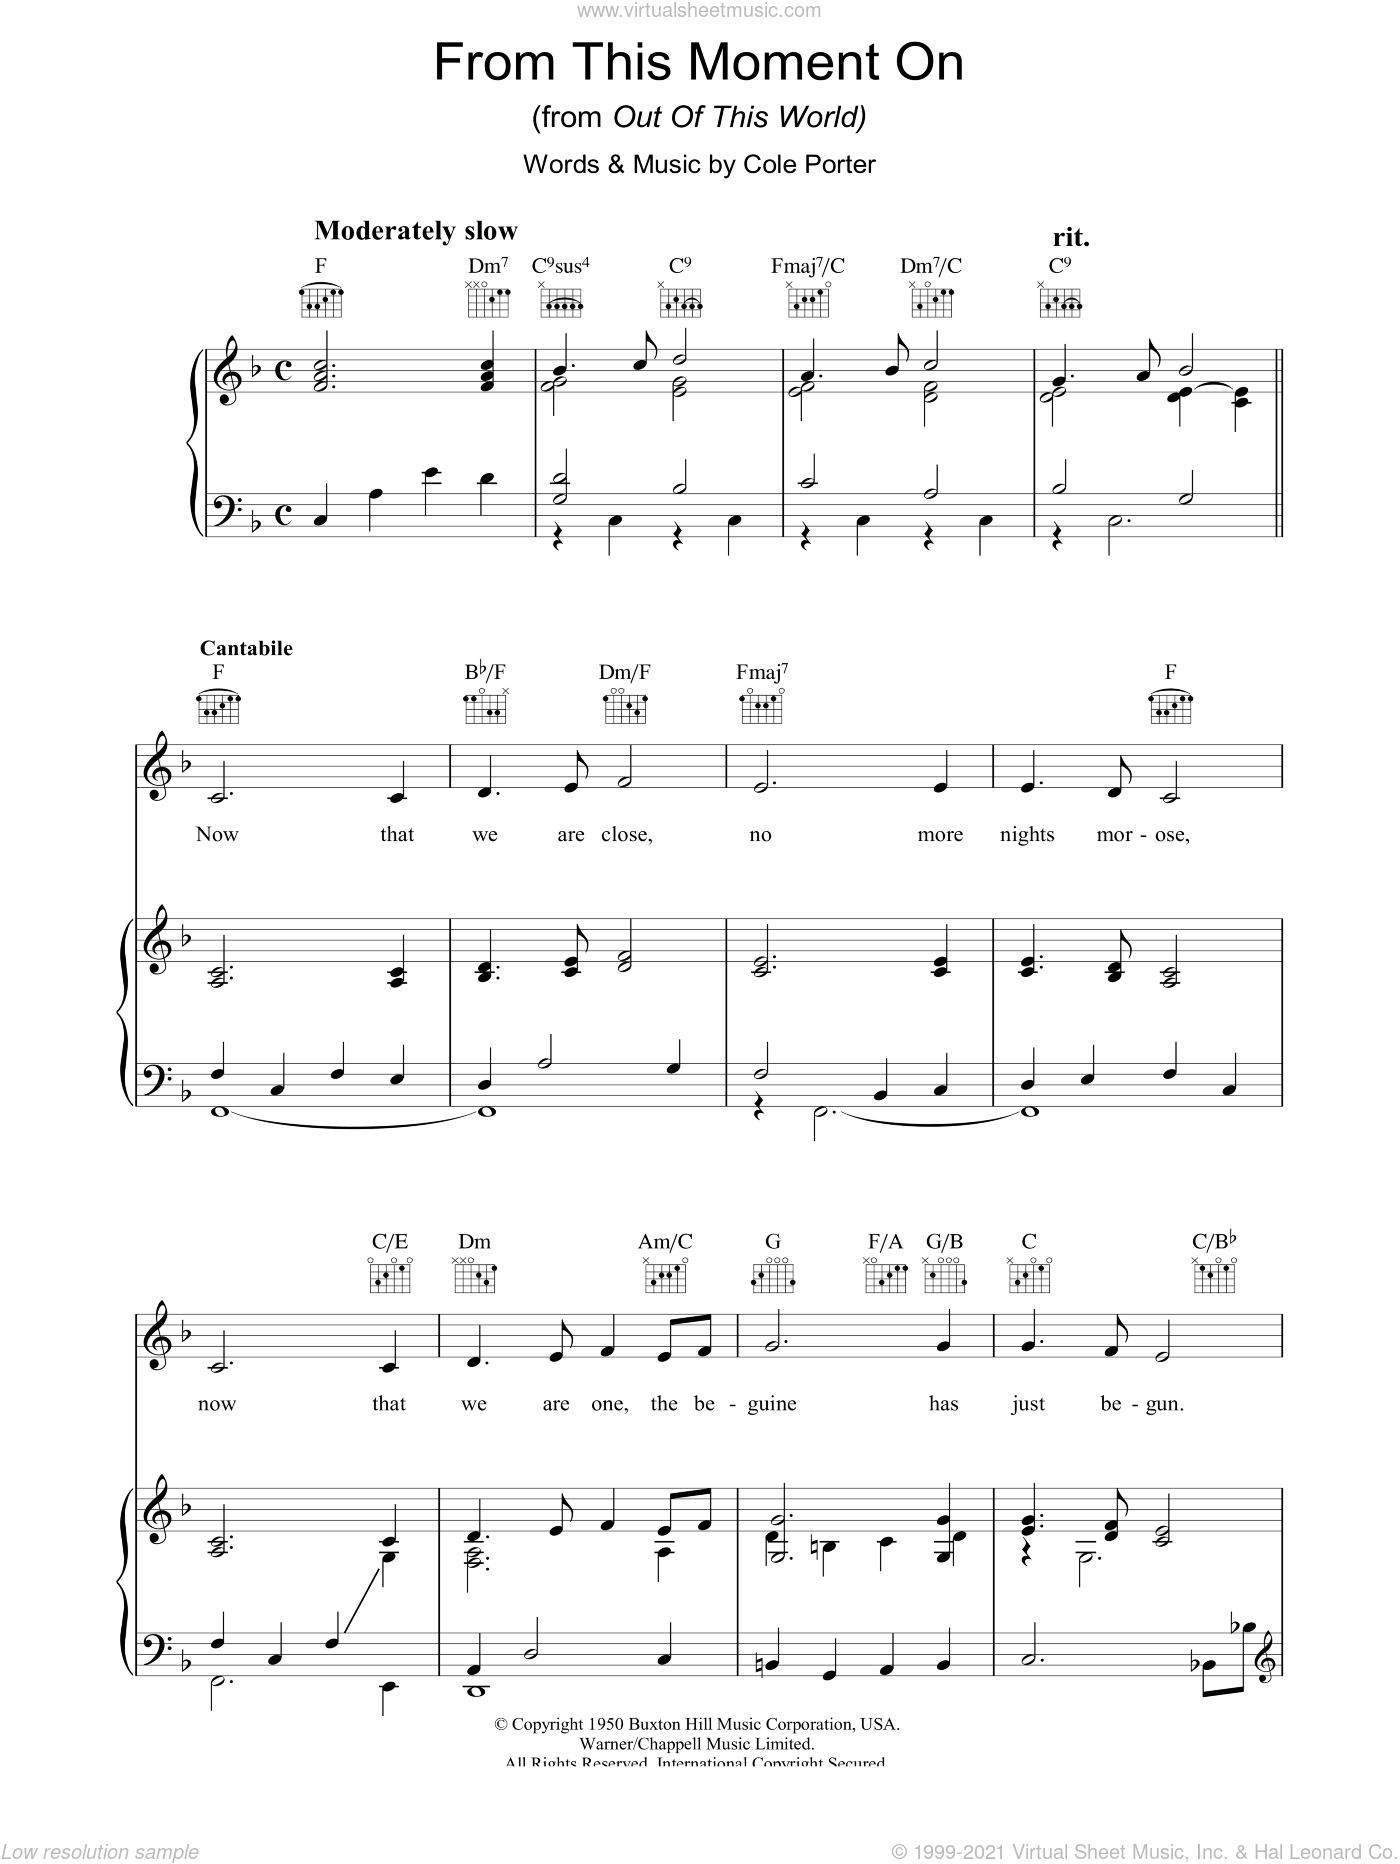 From This Moment On sheet music for voice, piano or guitar by Cole Porter